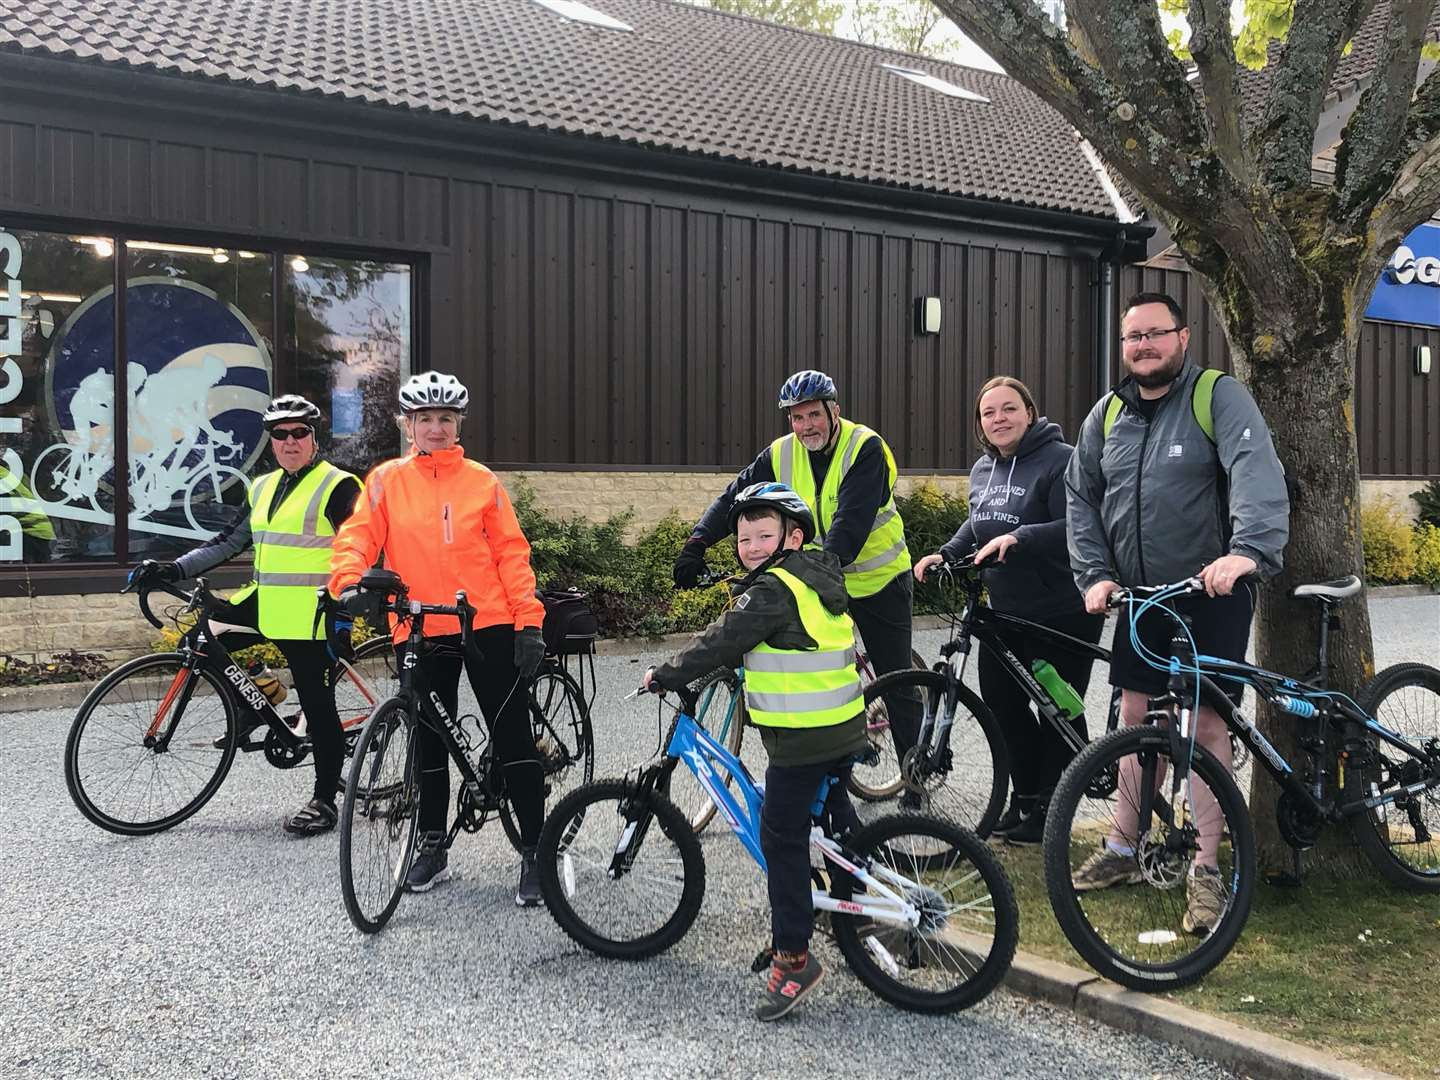 Frank McEwan completed his 50th ride on Sunday - with a little support from family and friends. Photo: Andrea Chapman